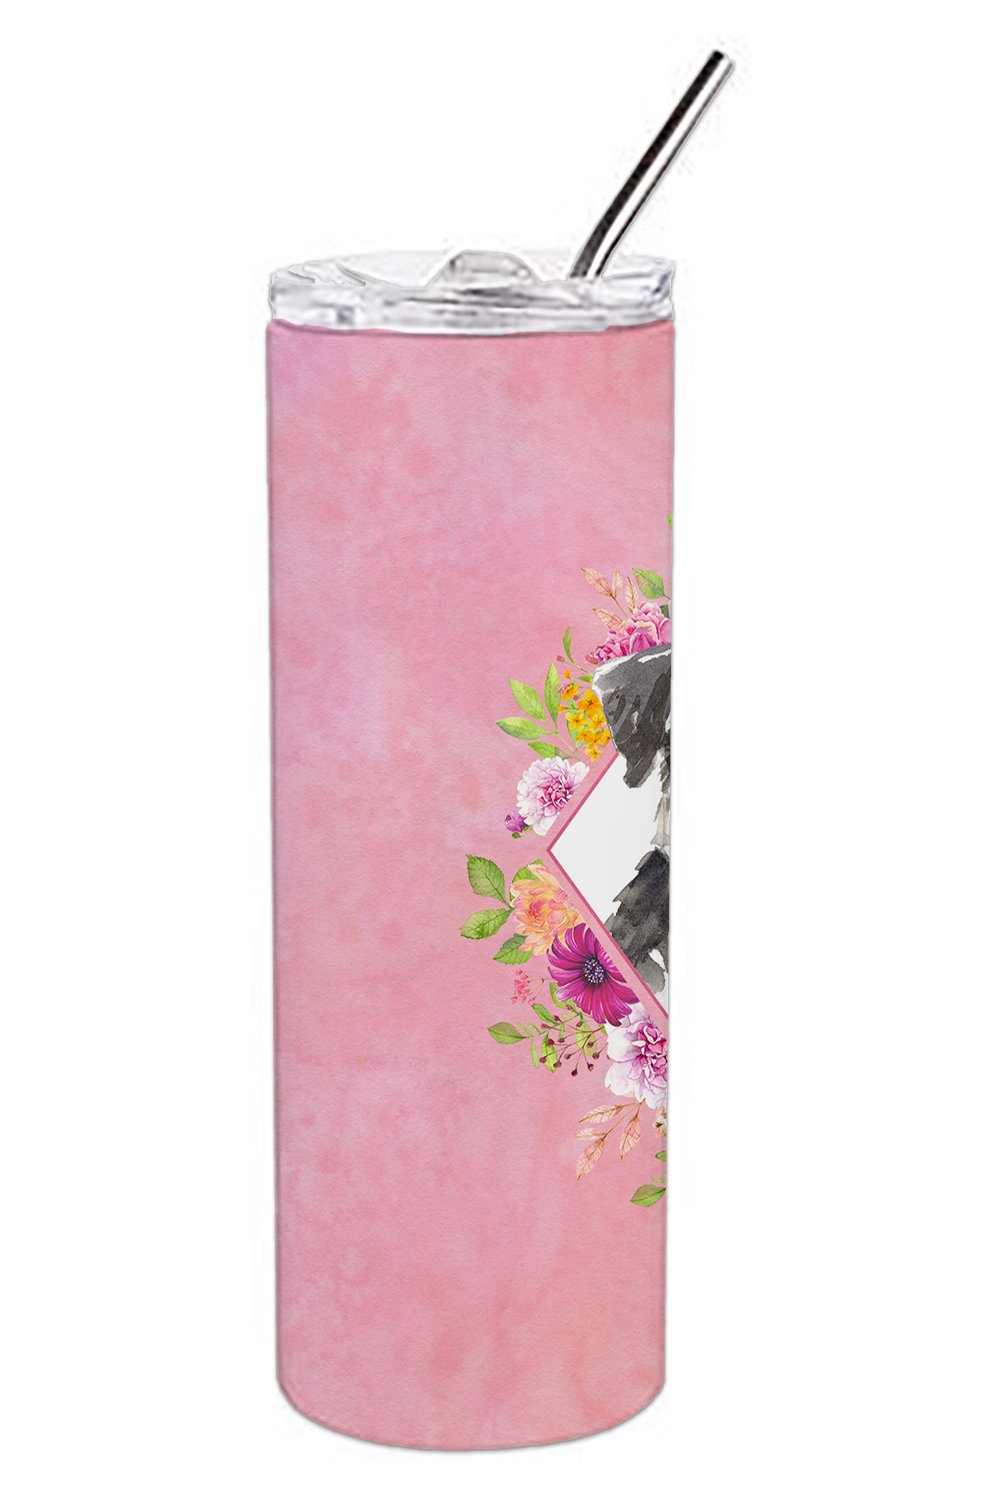 Schnauzer #2 Pink Flowers Double Walled Stainless Steel 20 oz Skinny Tumbler CK4222TBL20 by Caroline's Treasures